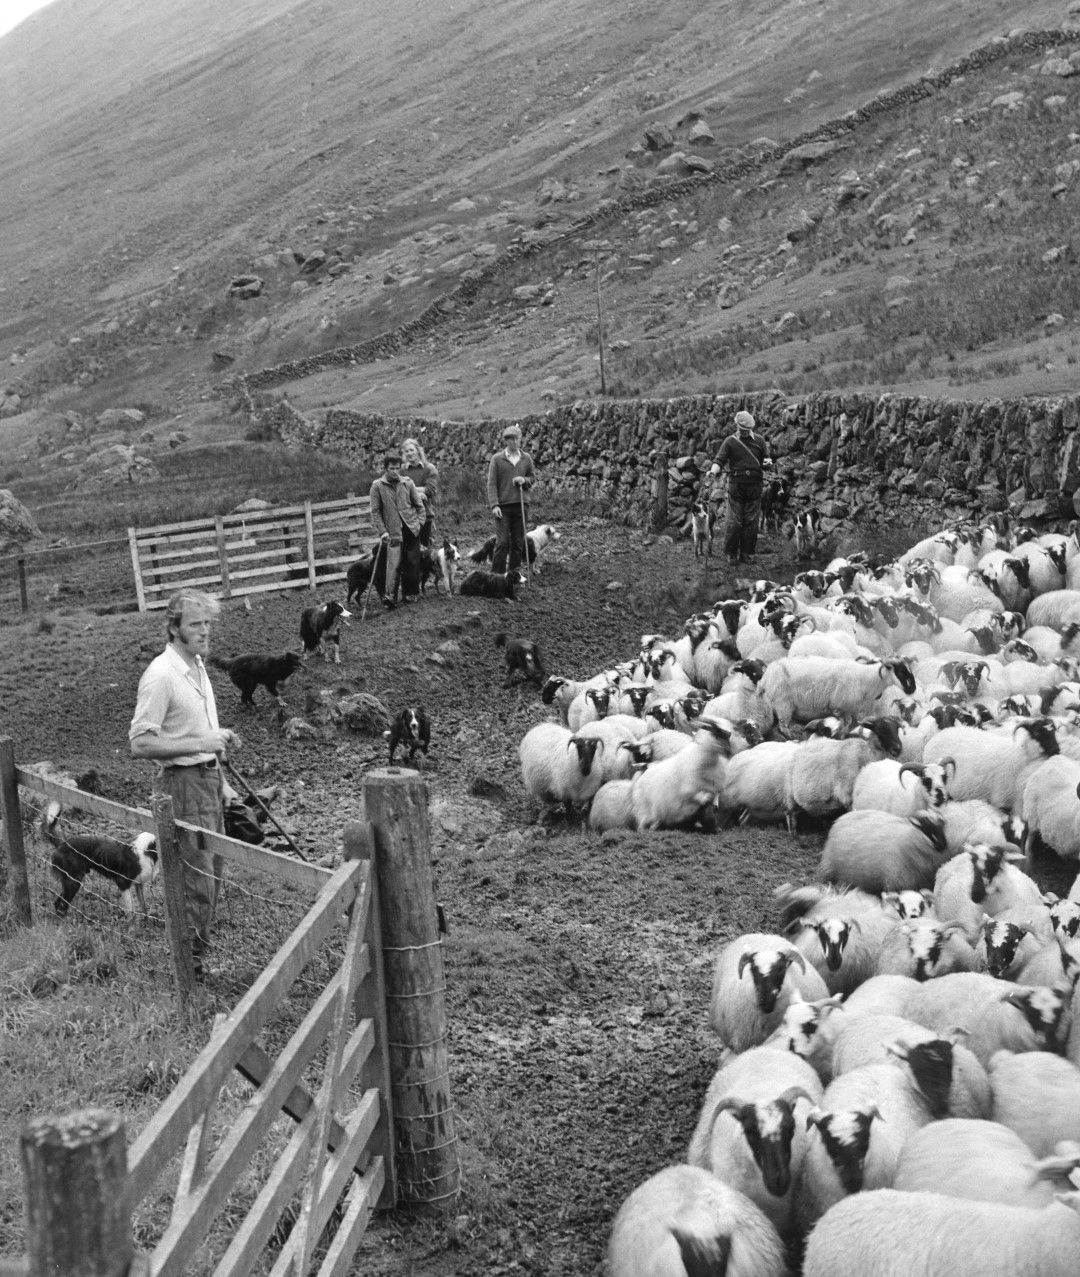 shepherds stand in a line with dogs as they herd a flock of sheep